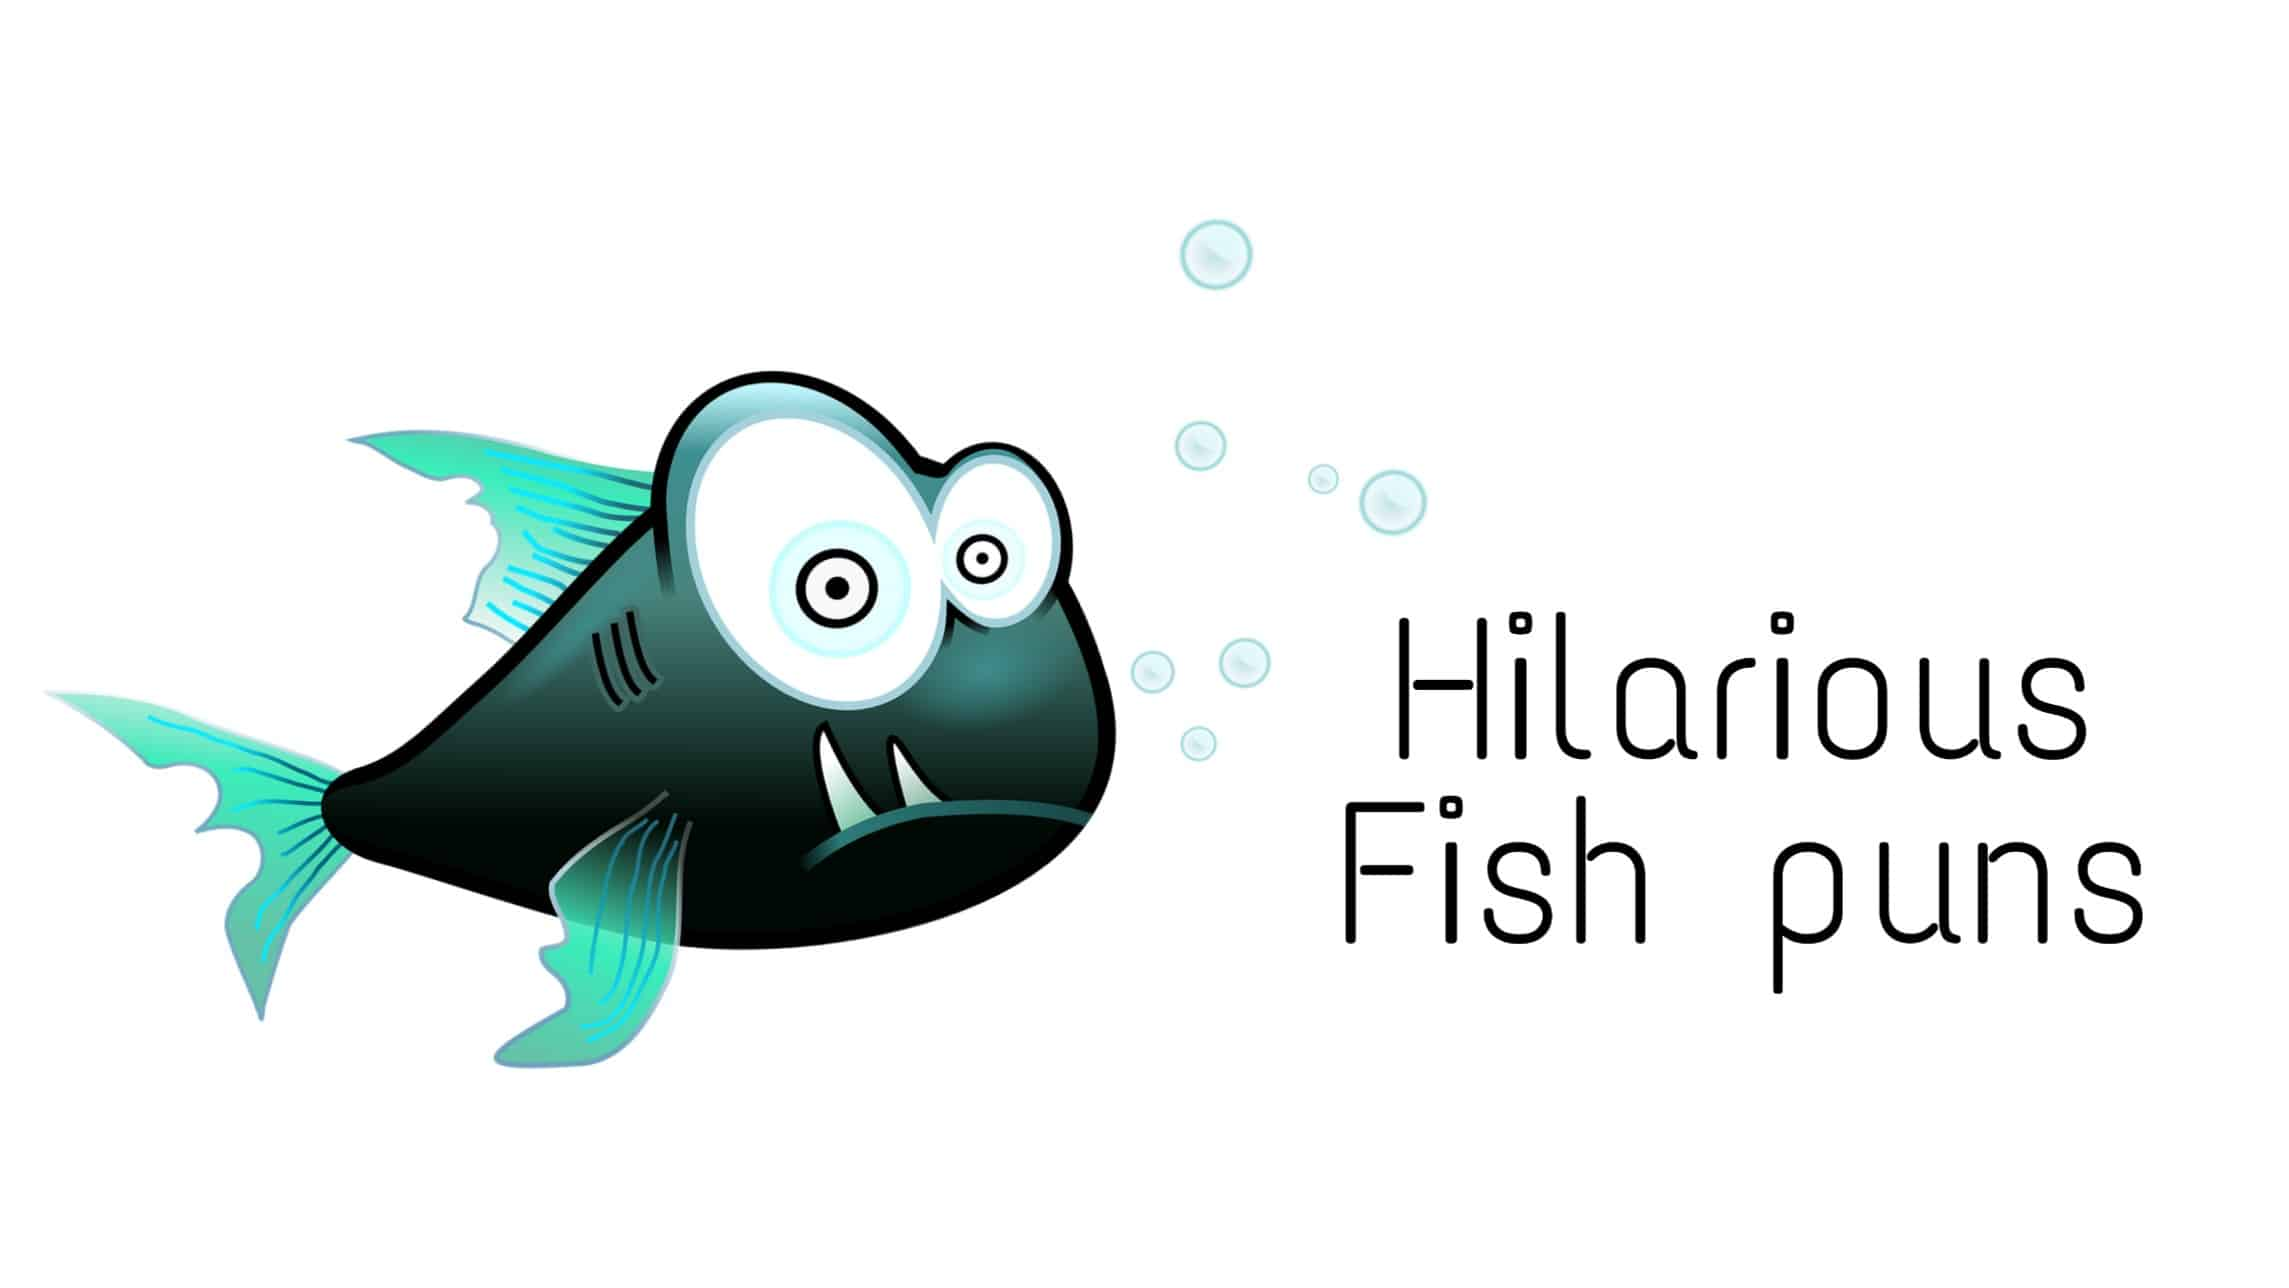 94 Fish Puns That'll Make You Laugh So Hard